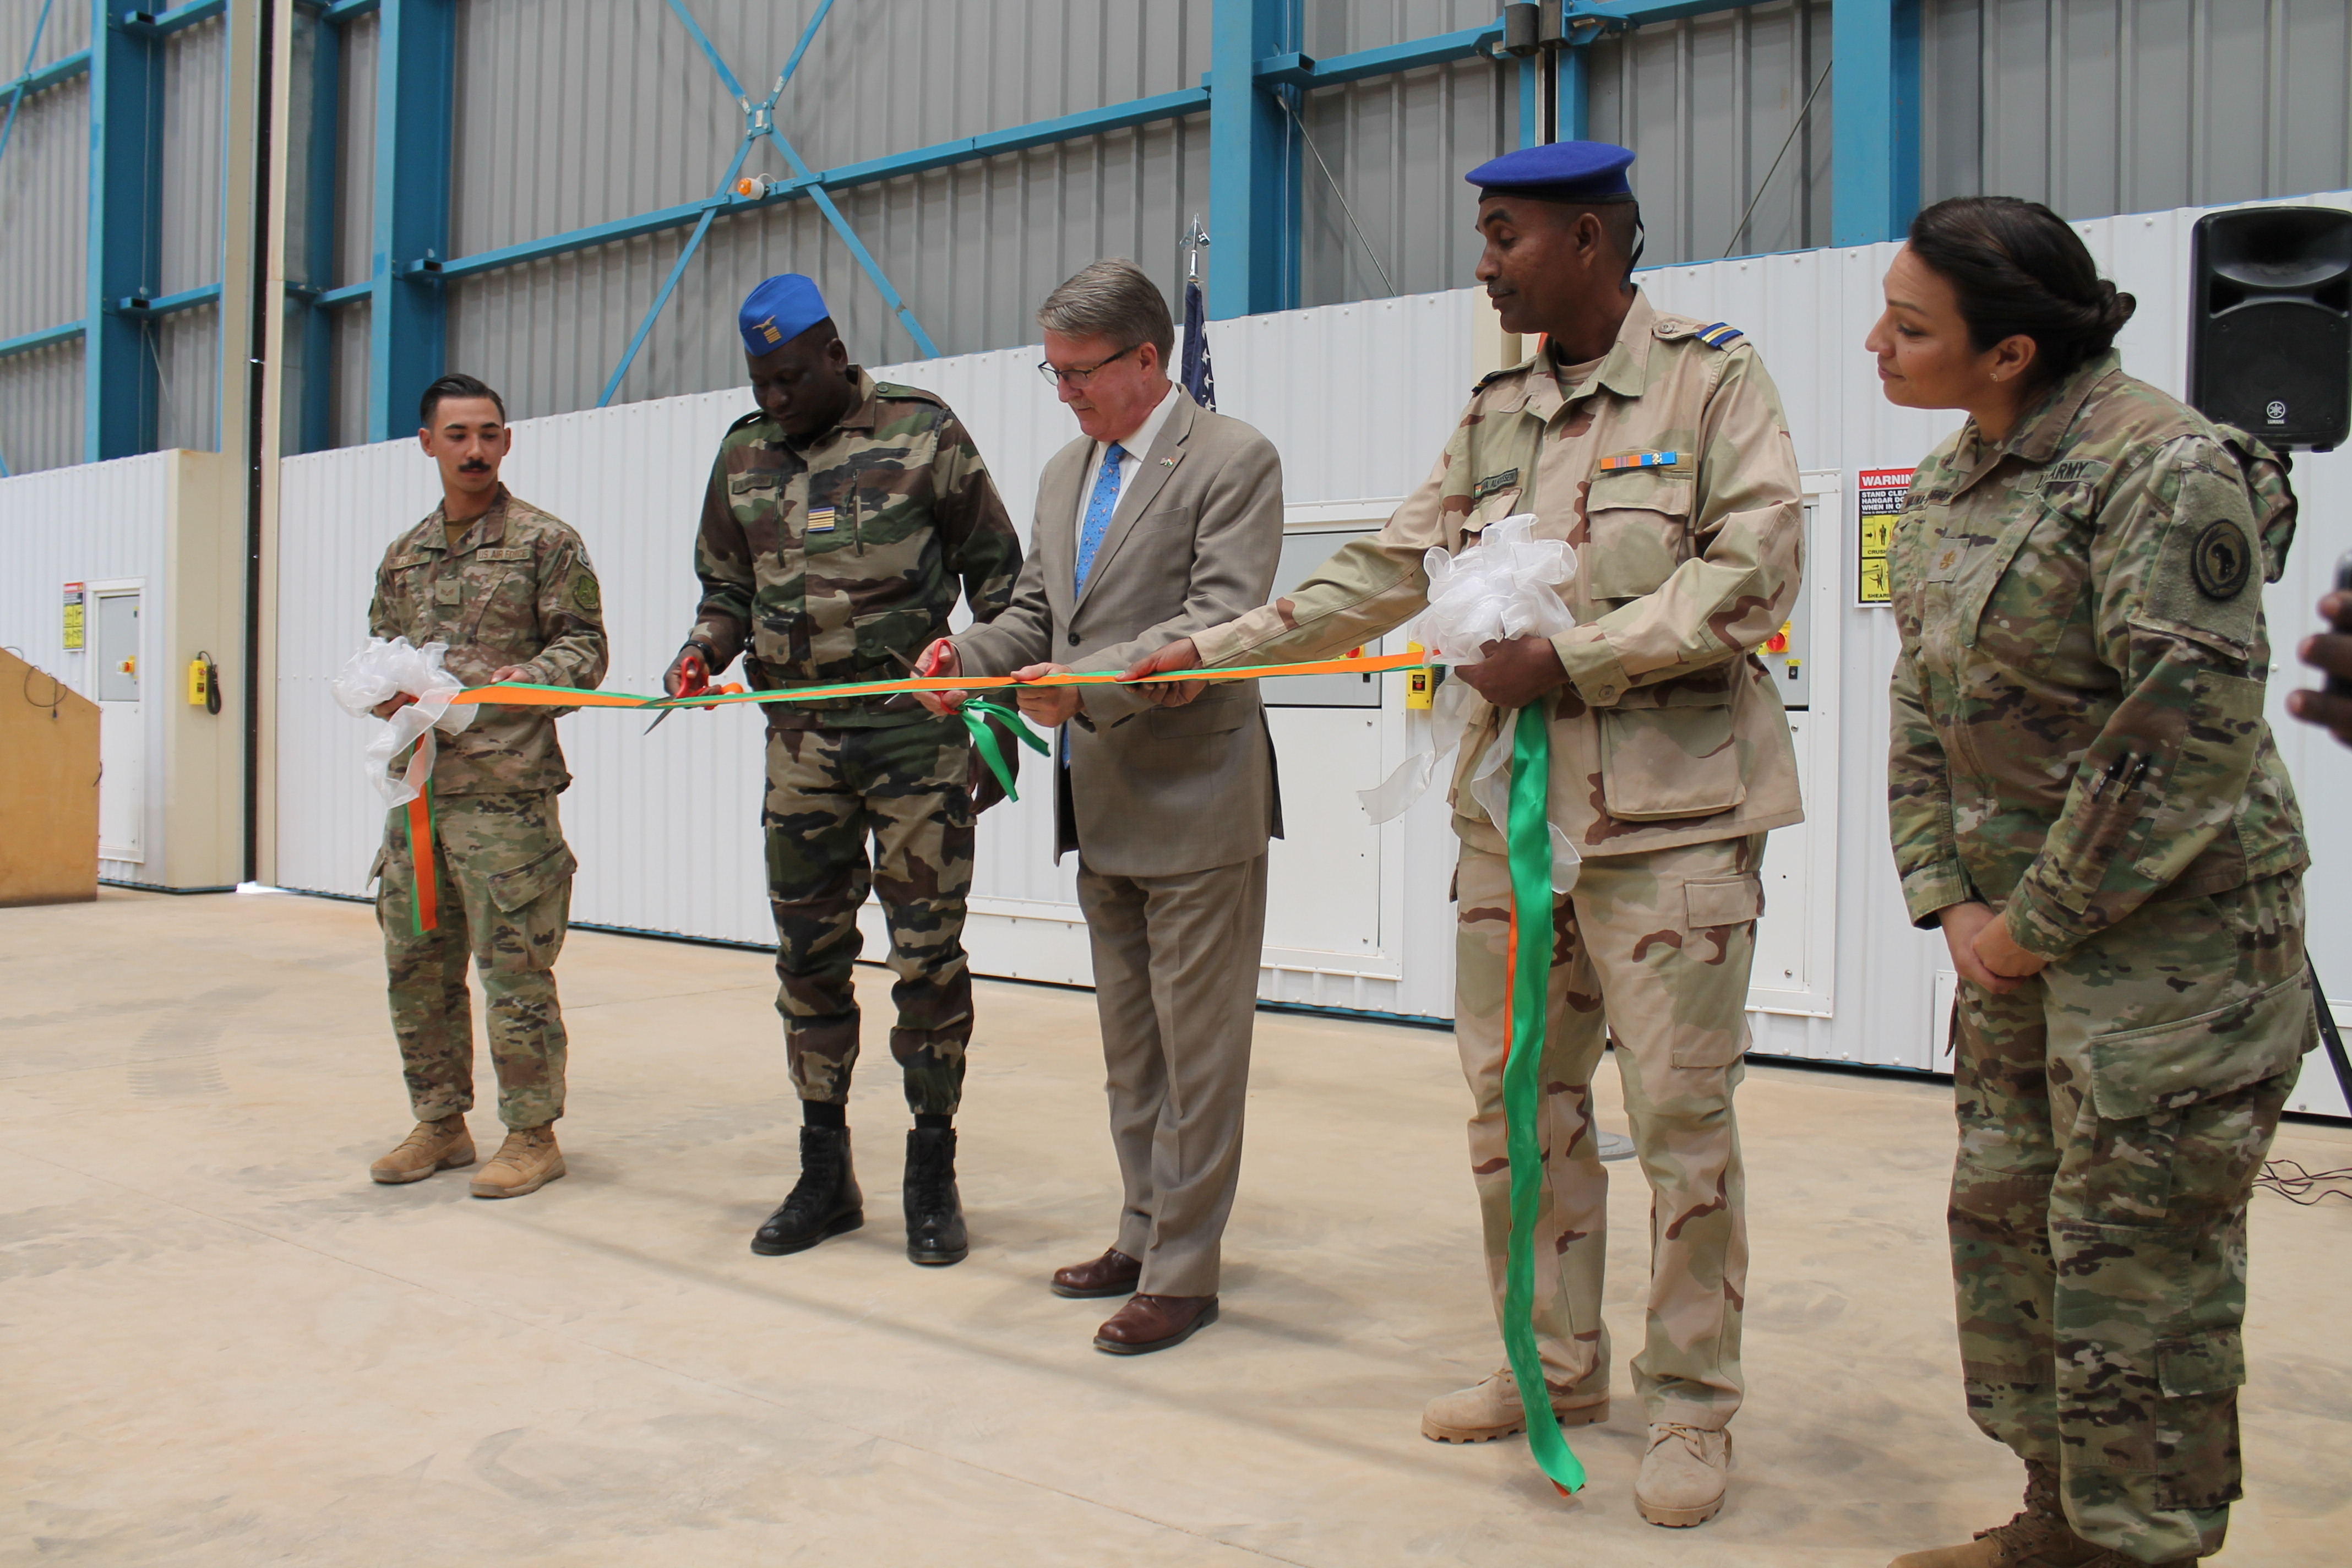 U.S. Army Gen. Stephen J. Townsend, commander, U.S. Africa Command, addresses force U.S. military service members at Camp Simba, Kenya, Feb. 12, 2020. Townsend's command visit was to personally assess the security situation at the Kenyan Defense Force installation at Manda Bay, Kenya and to thank the U.S. military personnel for their service and highlighted the value of their work alongside our Kenyan partners. (U.S. Air Force photo by Tech. Sgt. Christopher Ruano)